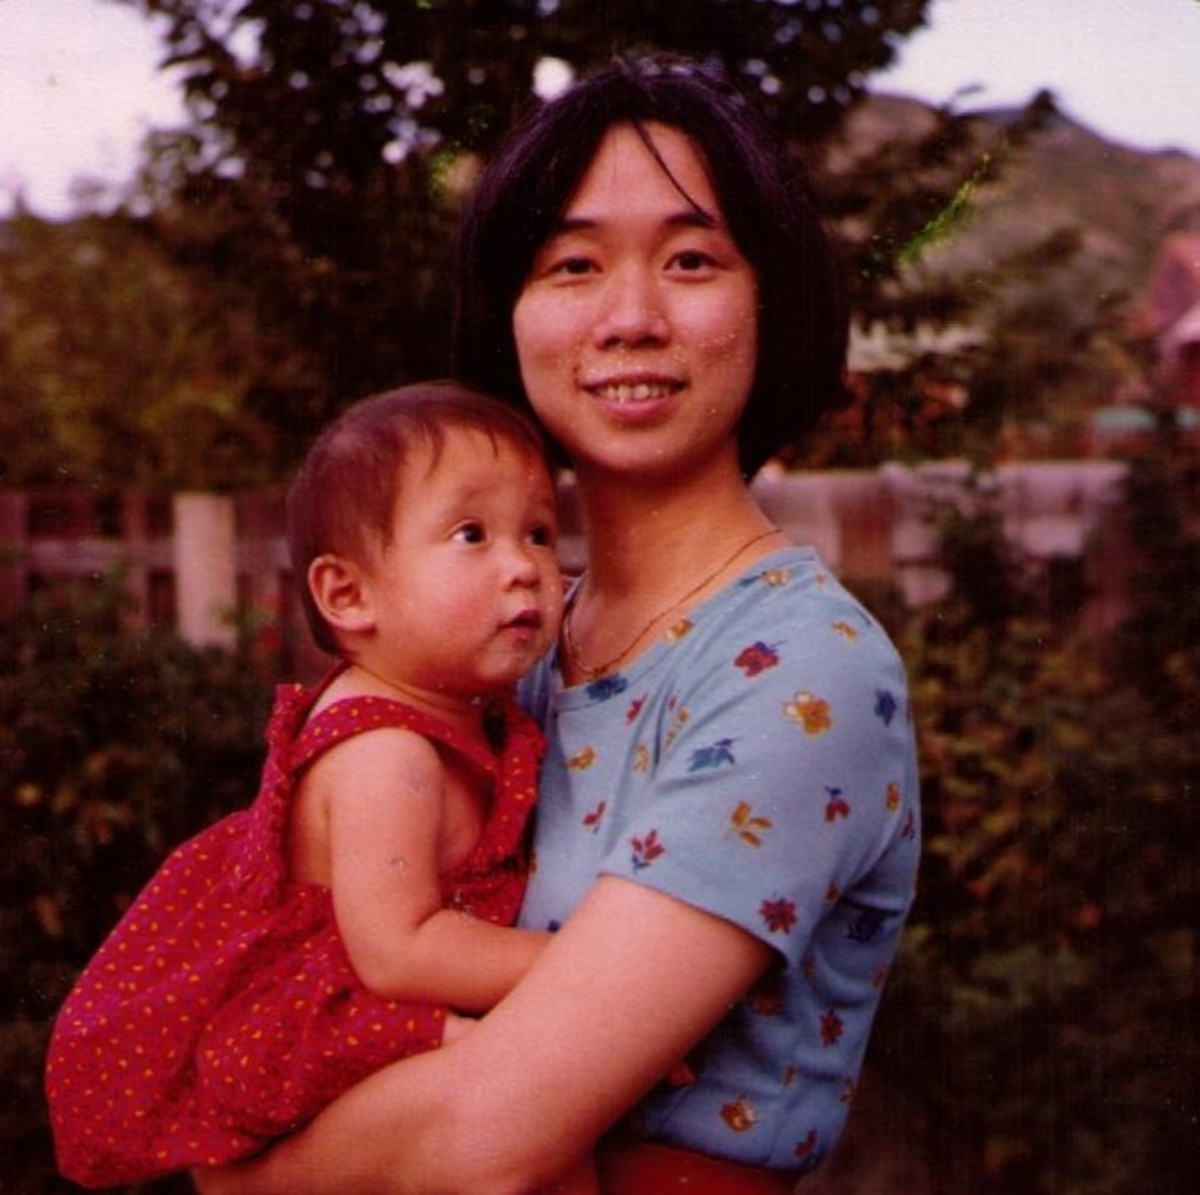 Mom and me: Stereotypes and Race